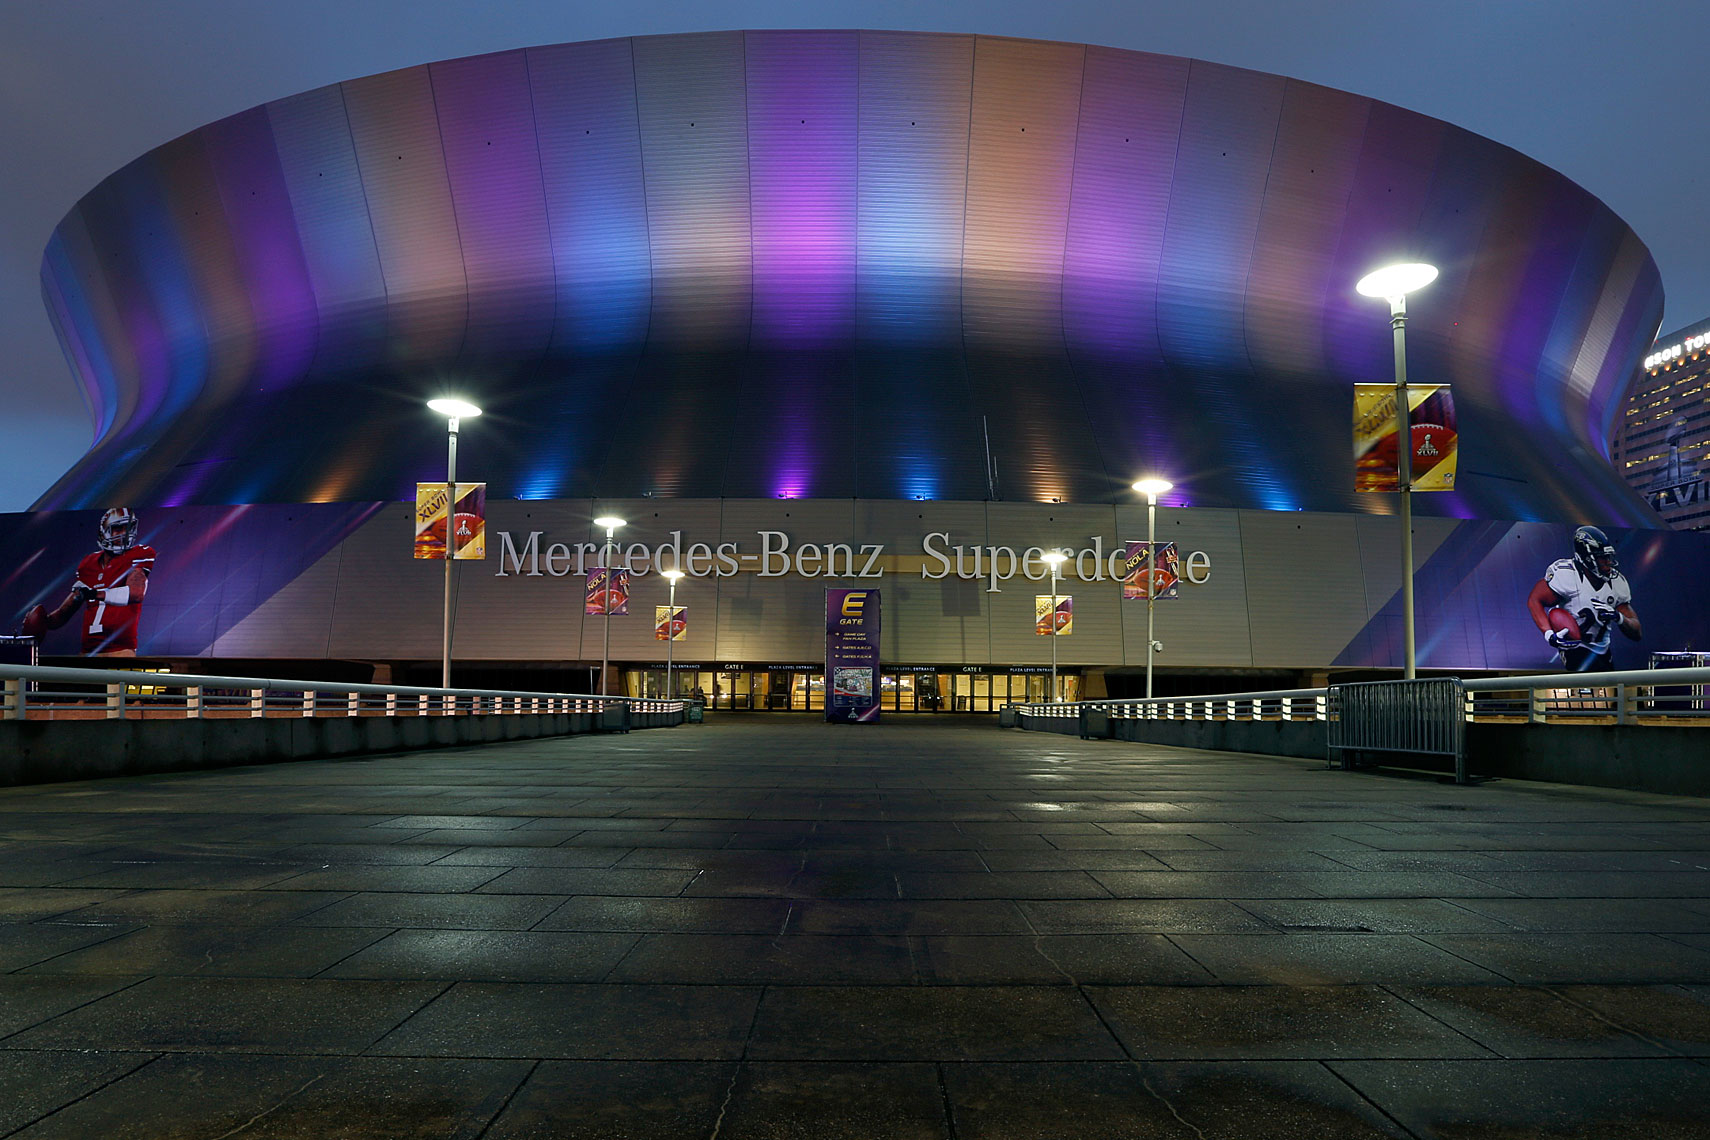 Dusk at the Superdome, site of Super Bowl XLVII